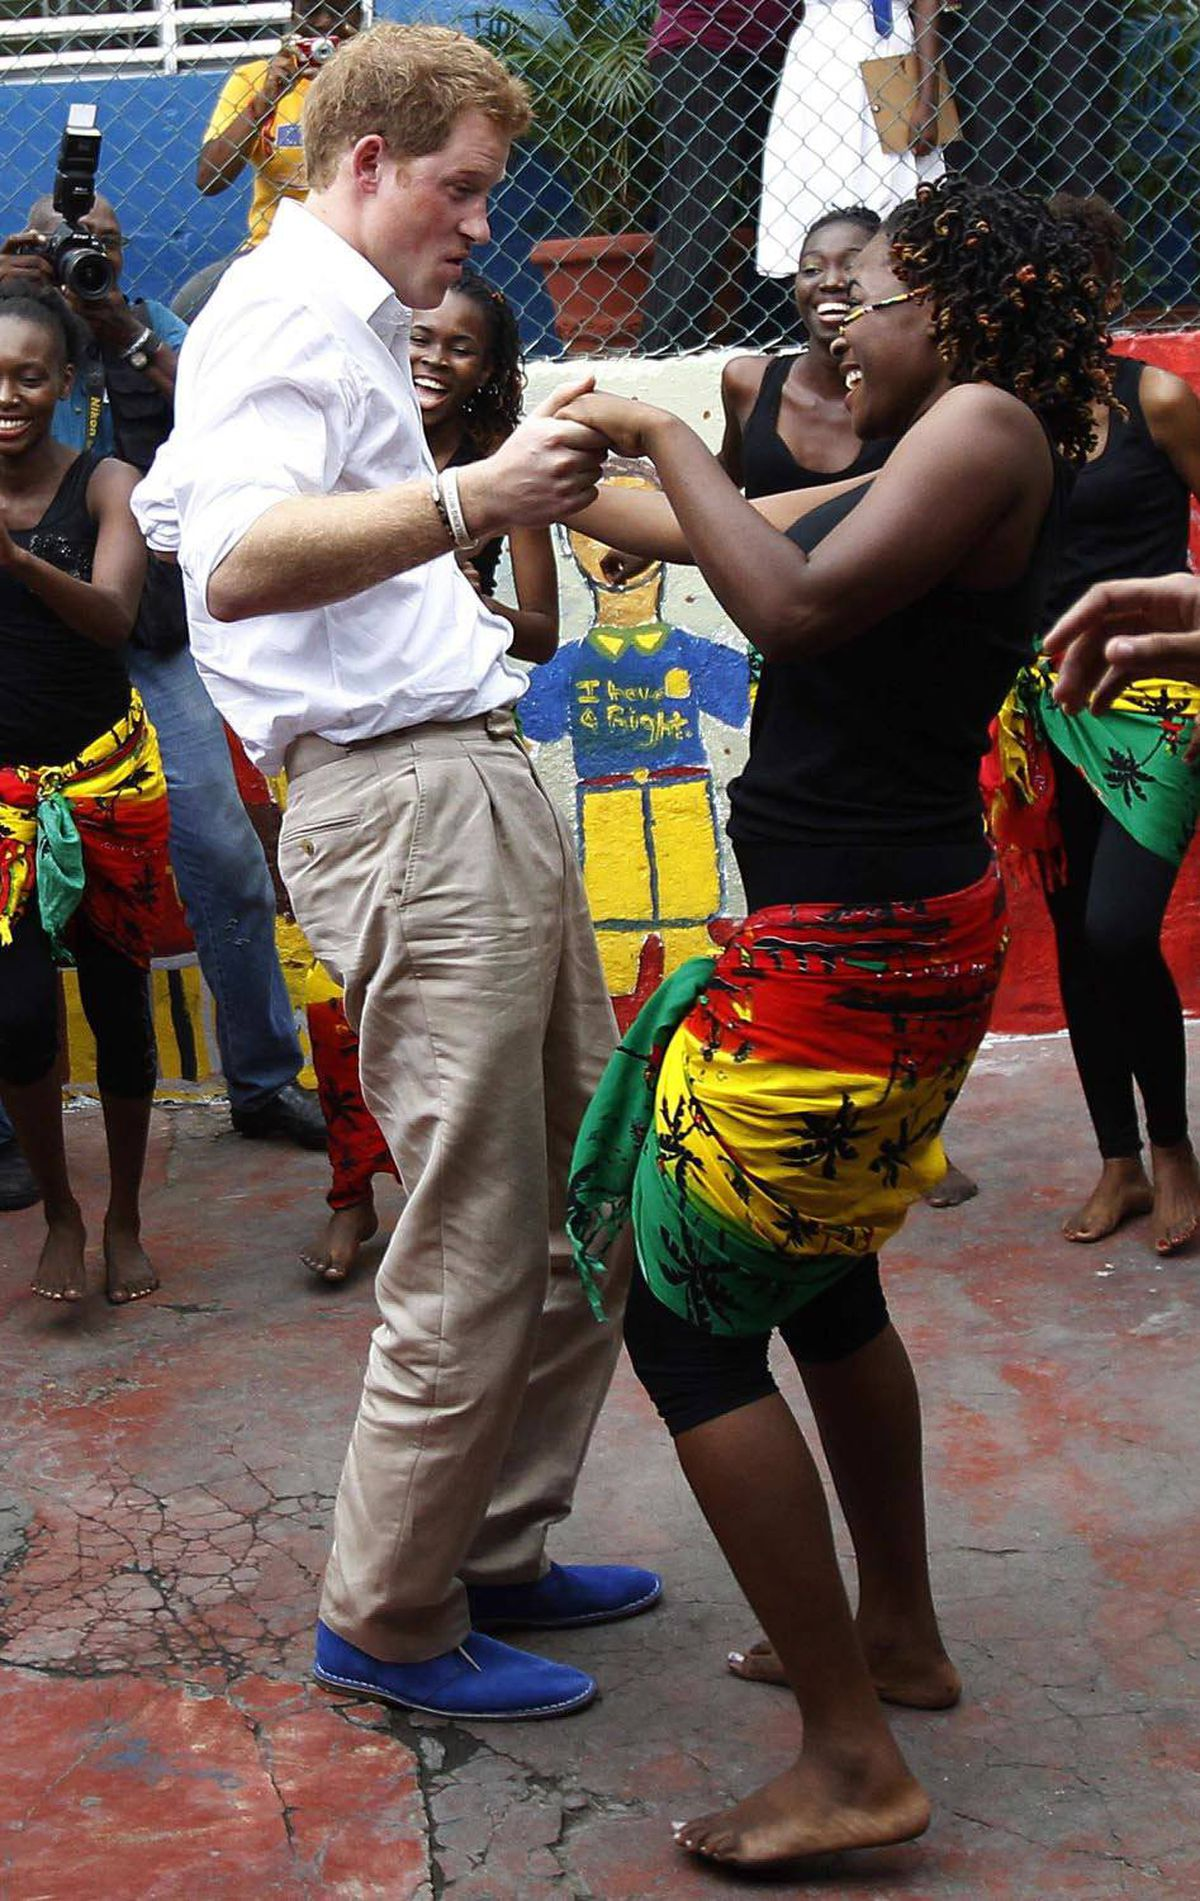 DANCER Britain's Prince Harry dances with Chantol Dormer at a youth community center in Kingston, Jamaica, March 6, 2012.